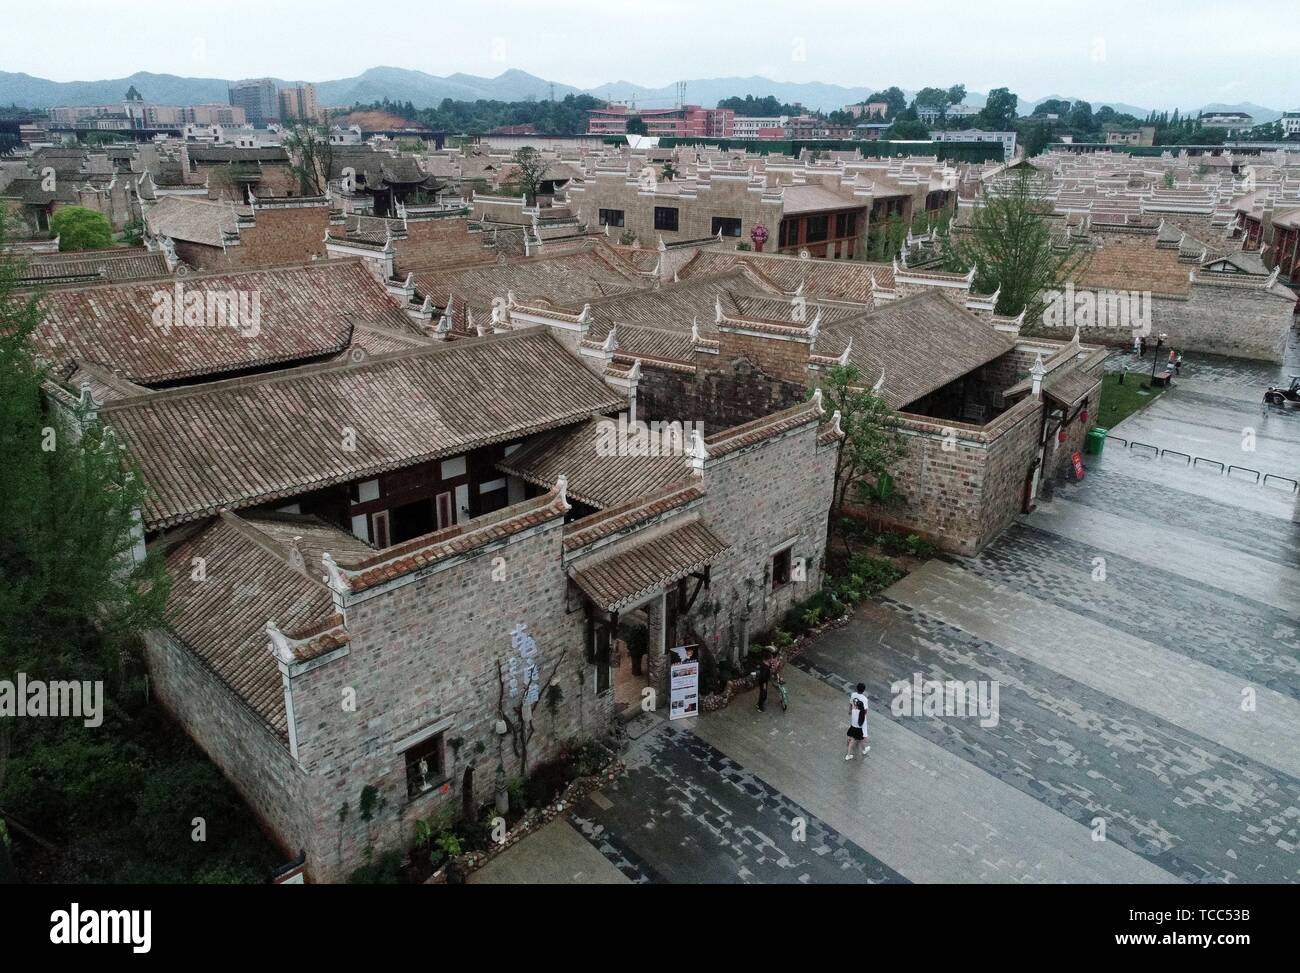 Nanchang. 6th June, 2019. Aerial photo taken on June 6, 2019 shows homestays in Wanzai County of Yichun, east China's Jiangxi Province. Homestay tourism in Wanzai County is booming as local government has made constant efforts in integrating culture industry and tourism. Credit: Peng Zhaozhi/Xinhua/Alamy Live News Stock Photo